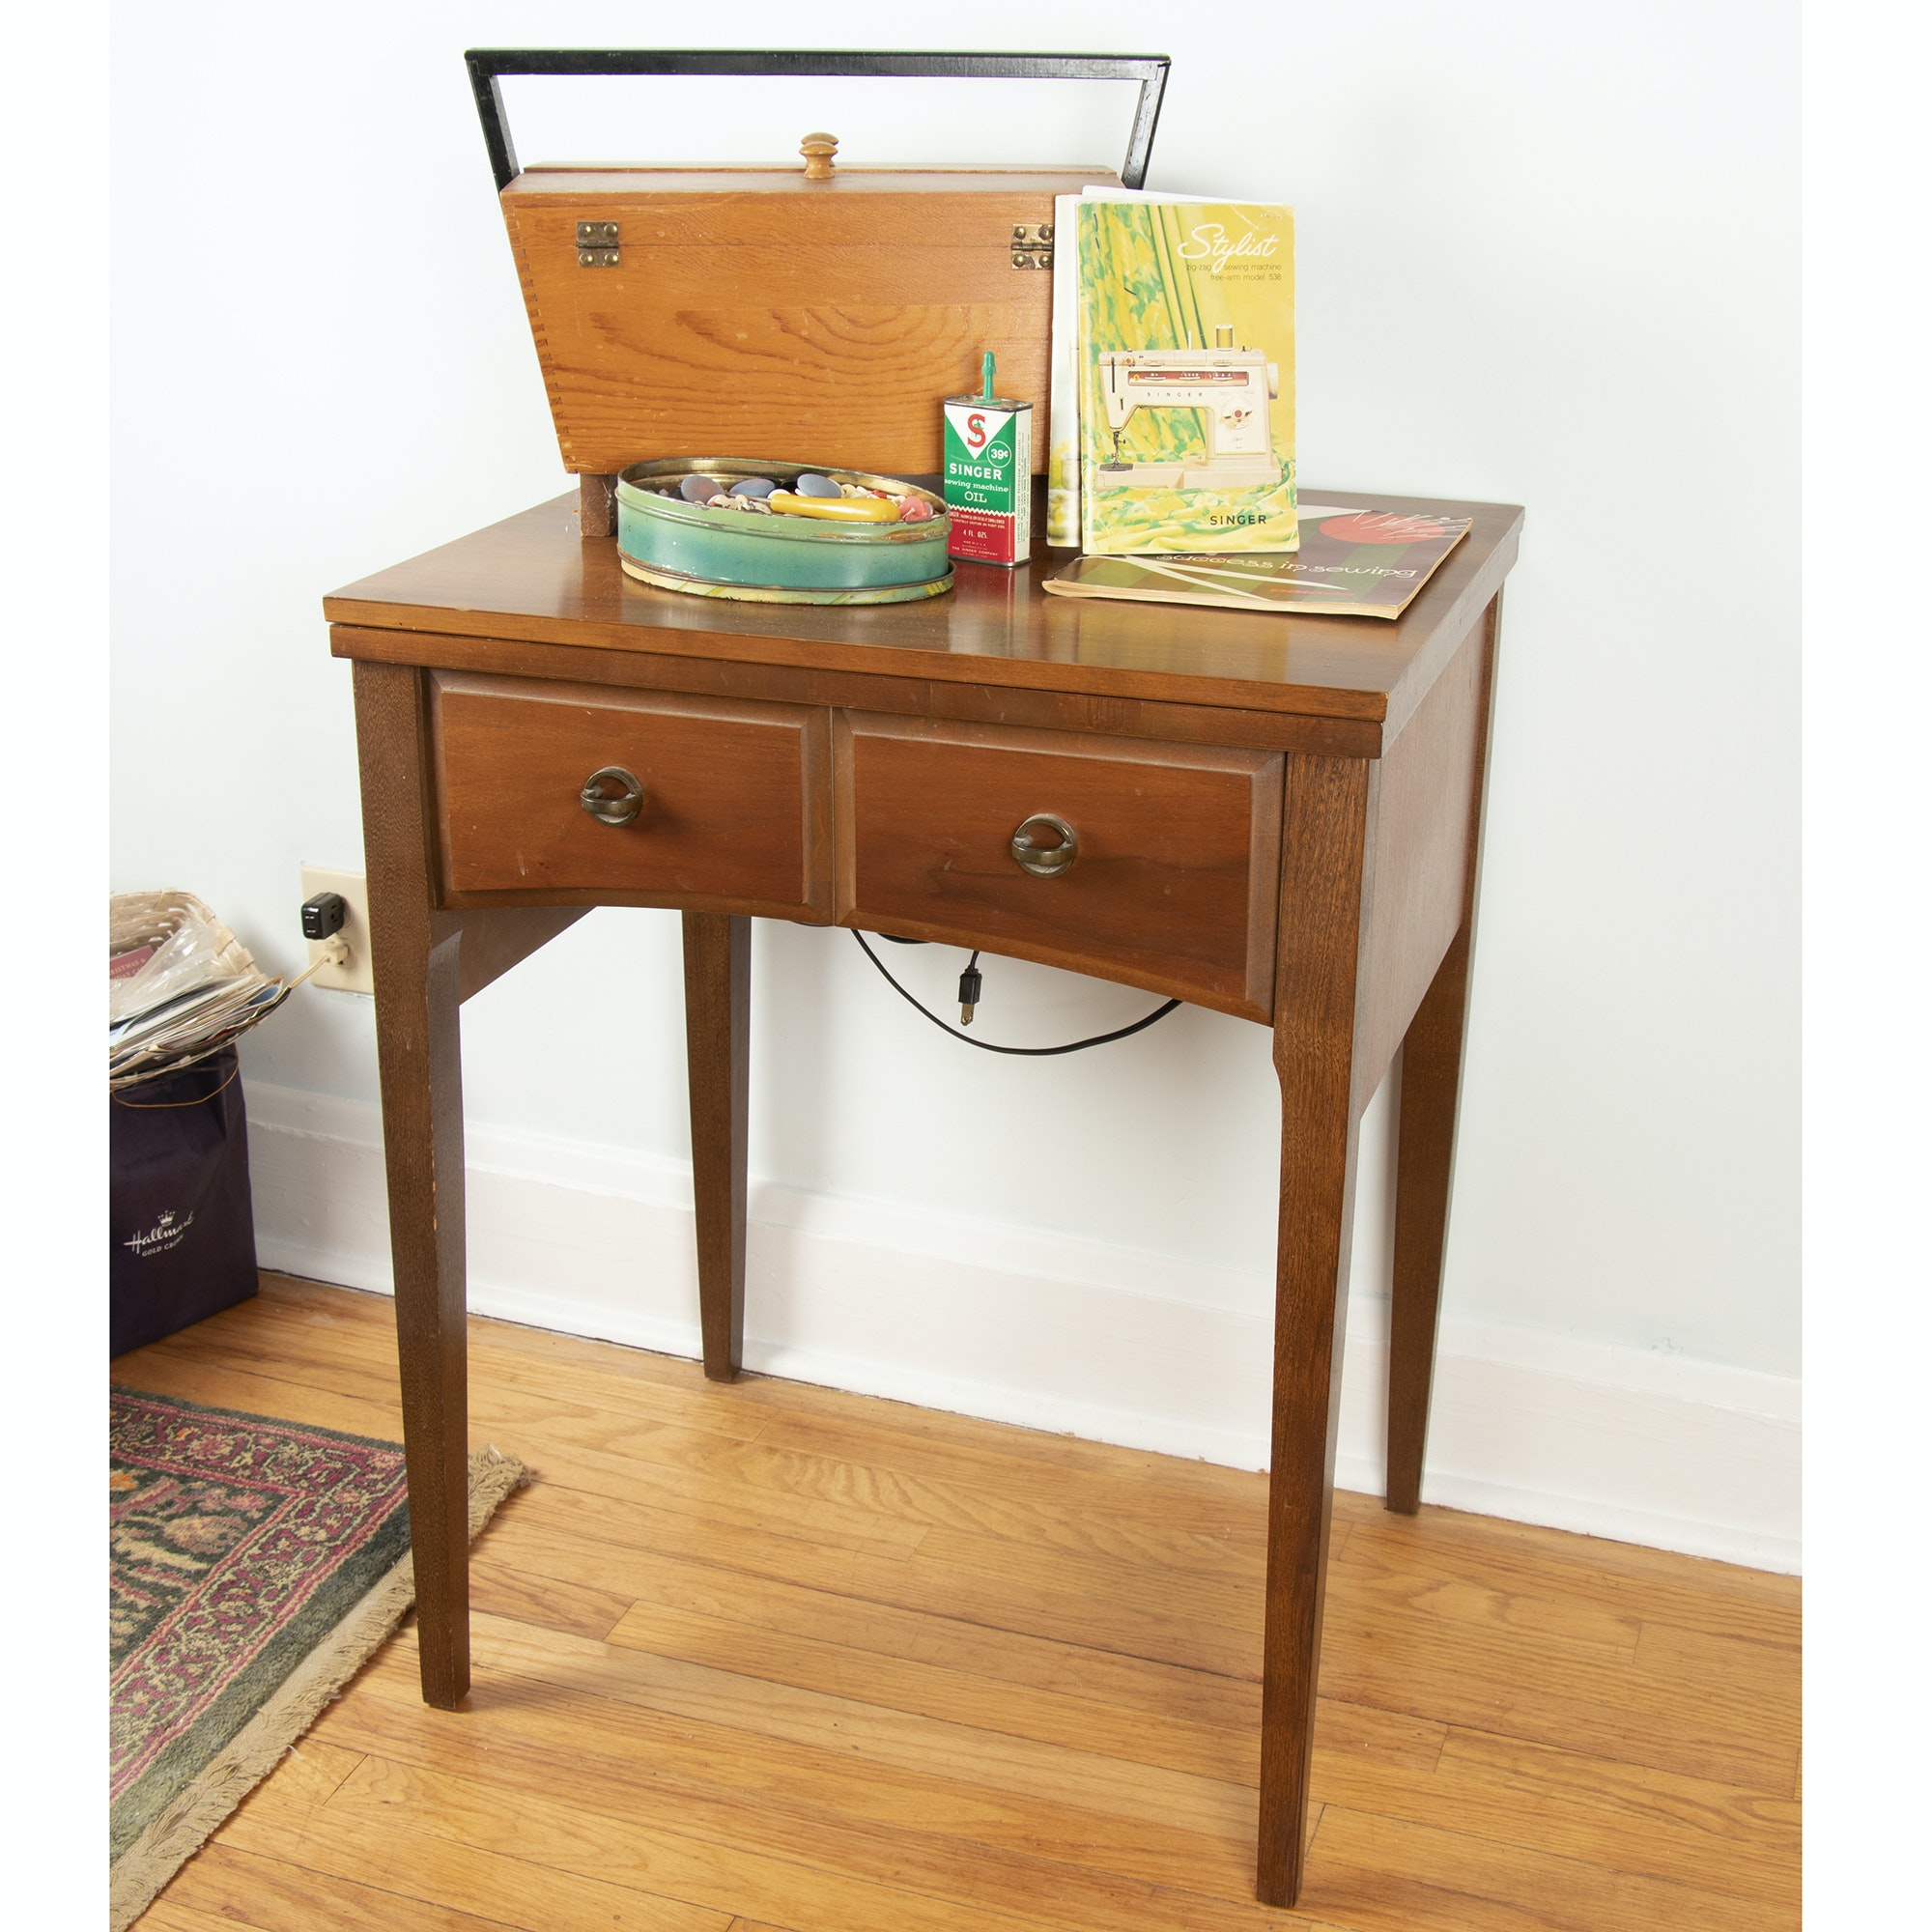 Singer Stylist 538 Sewing Machine Table with Cherry Cabinet and Accessories